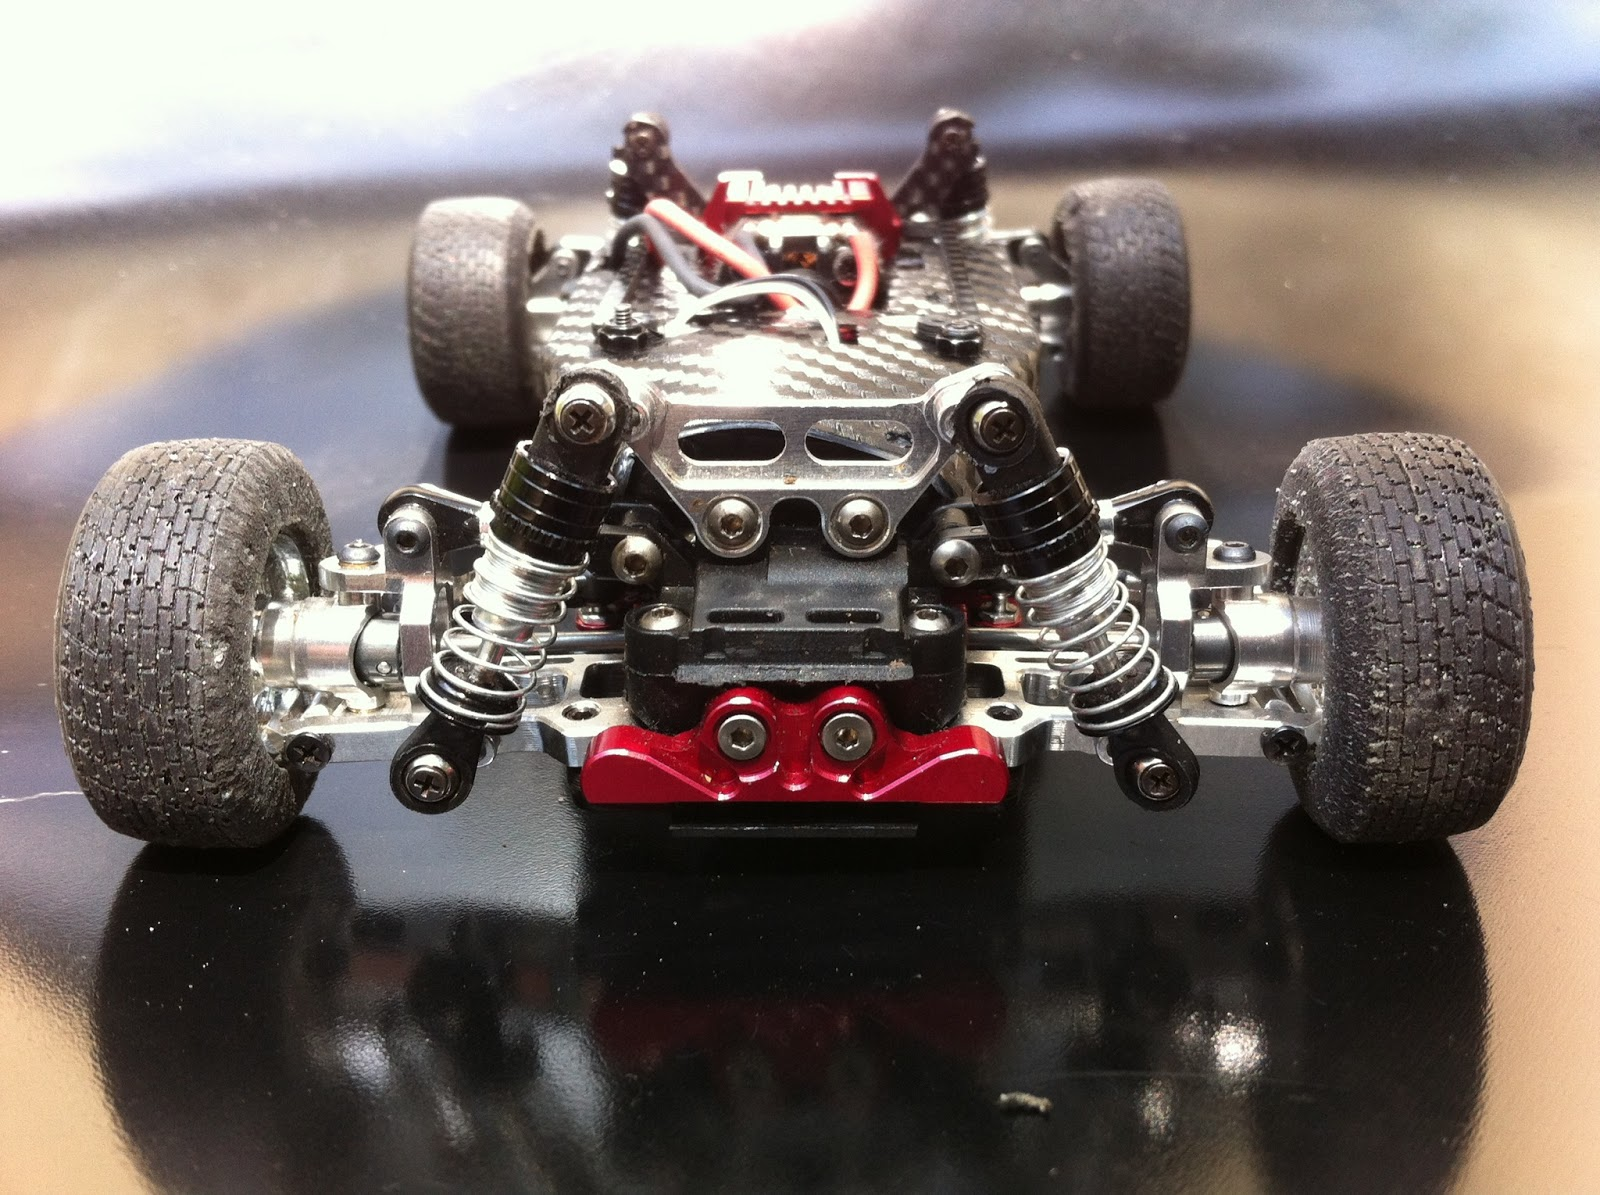 Kyoshosan Amazing Ford Coupe Mini Z Mod From France Pn Racing V2 Rc Printed Circuit Board Assembly Mr03 Setting Source Beavis